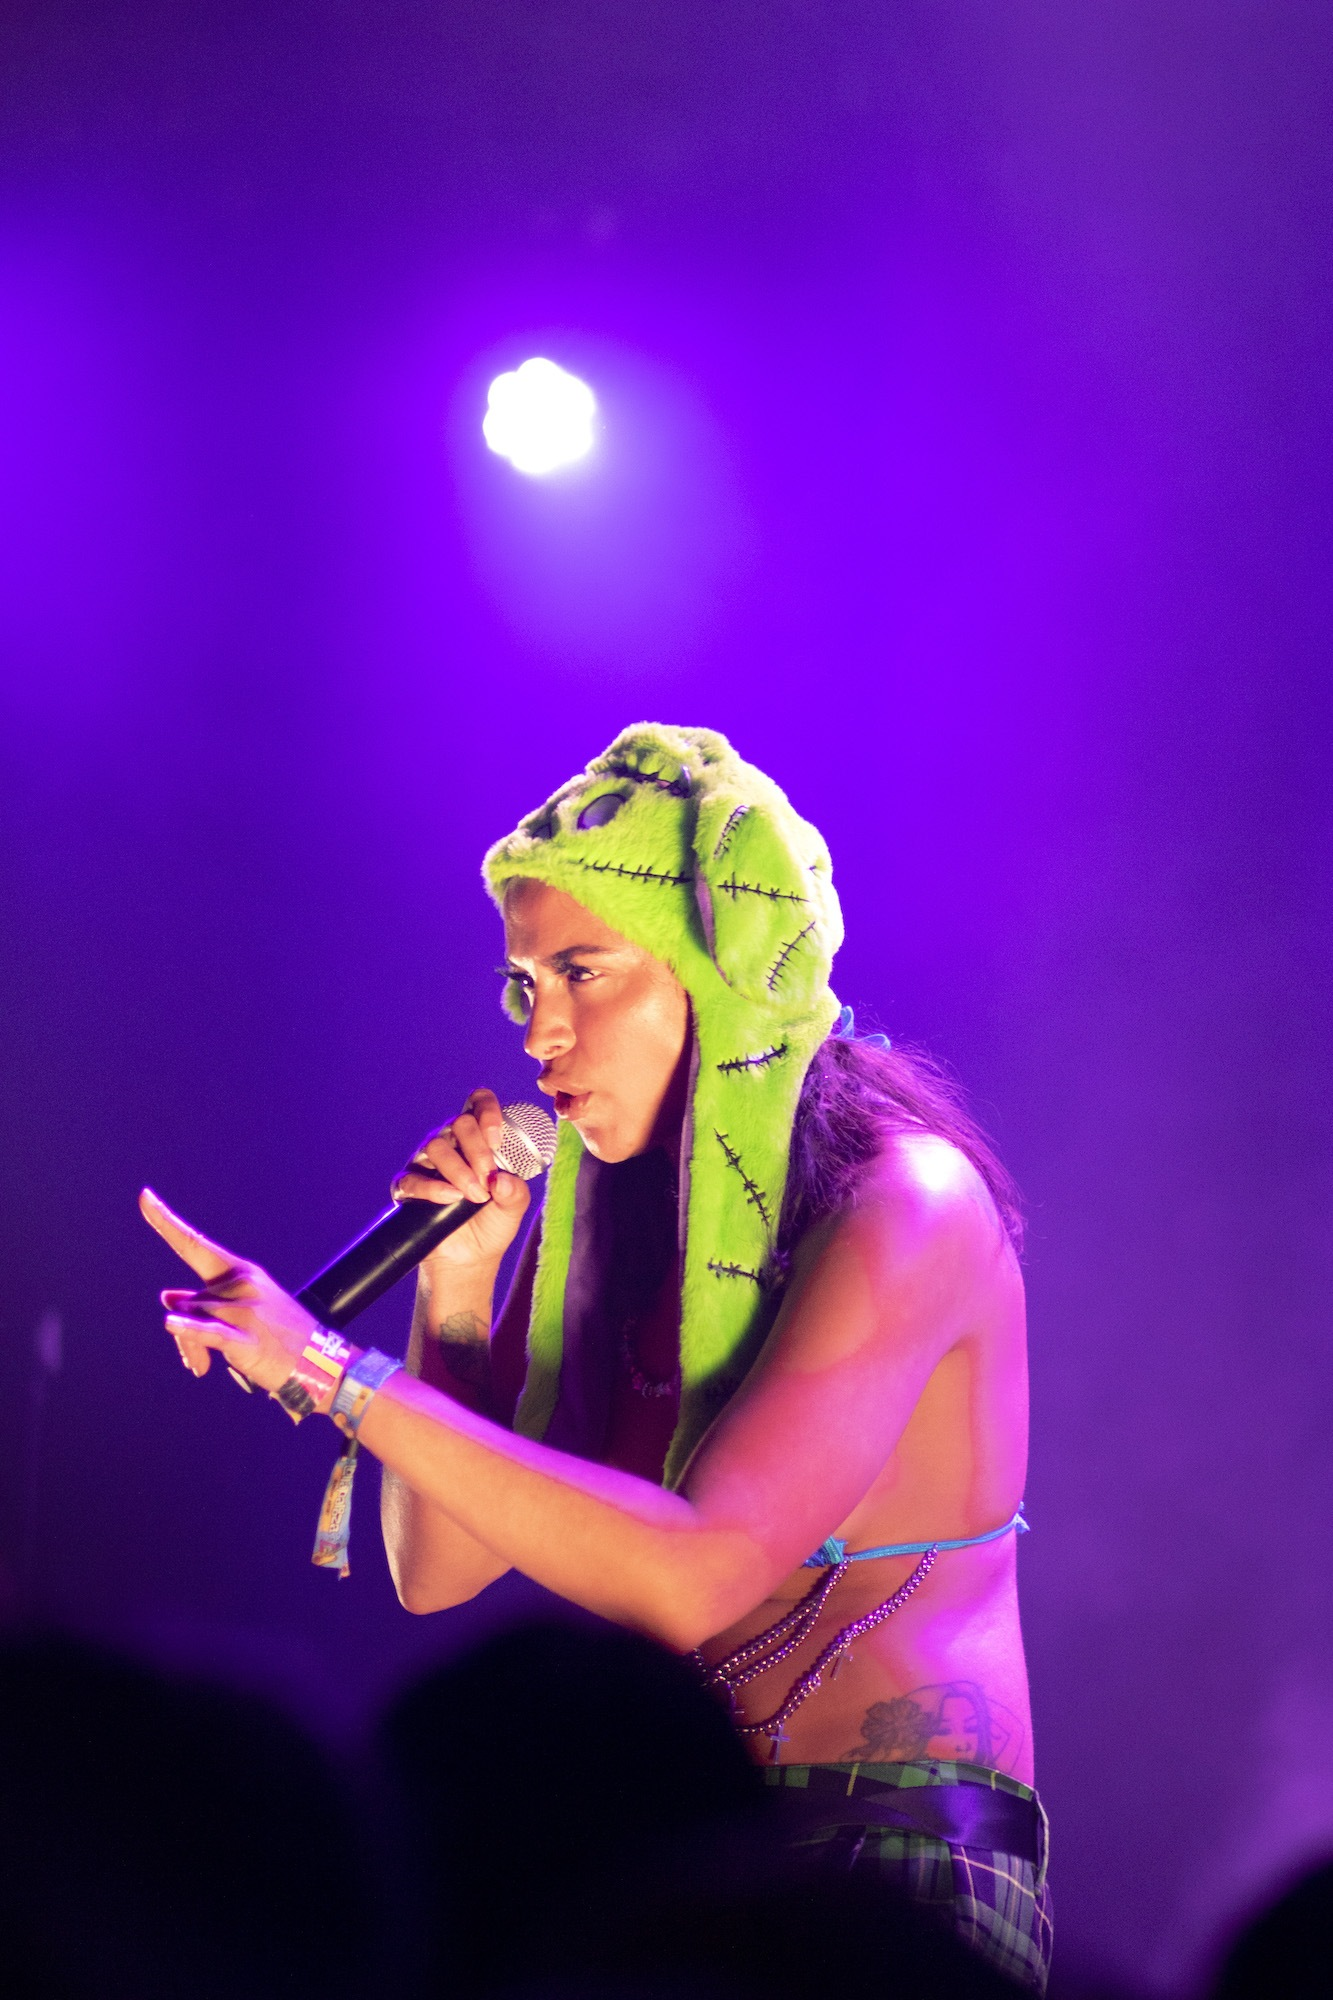 Princess Nokia - Official Lollapalooza Aftershow - Lincoln Hall - Chicago, IL - 08/01/2021 - Photo © 2021 by: Riley James